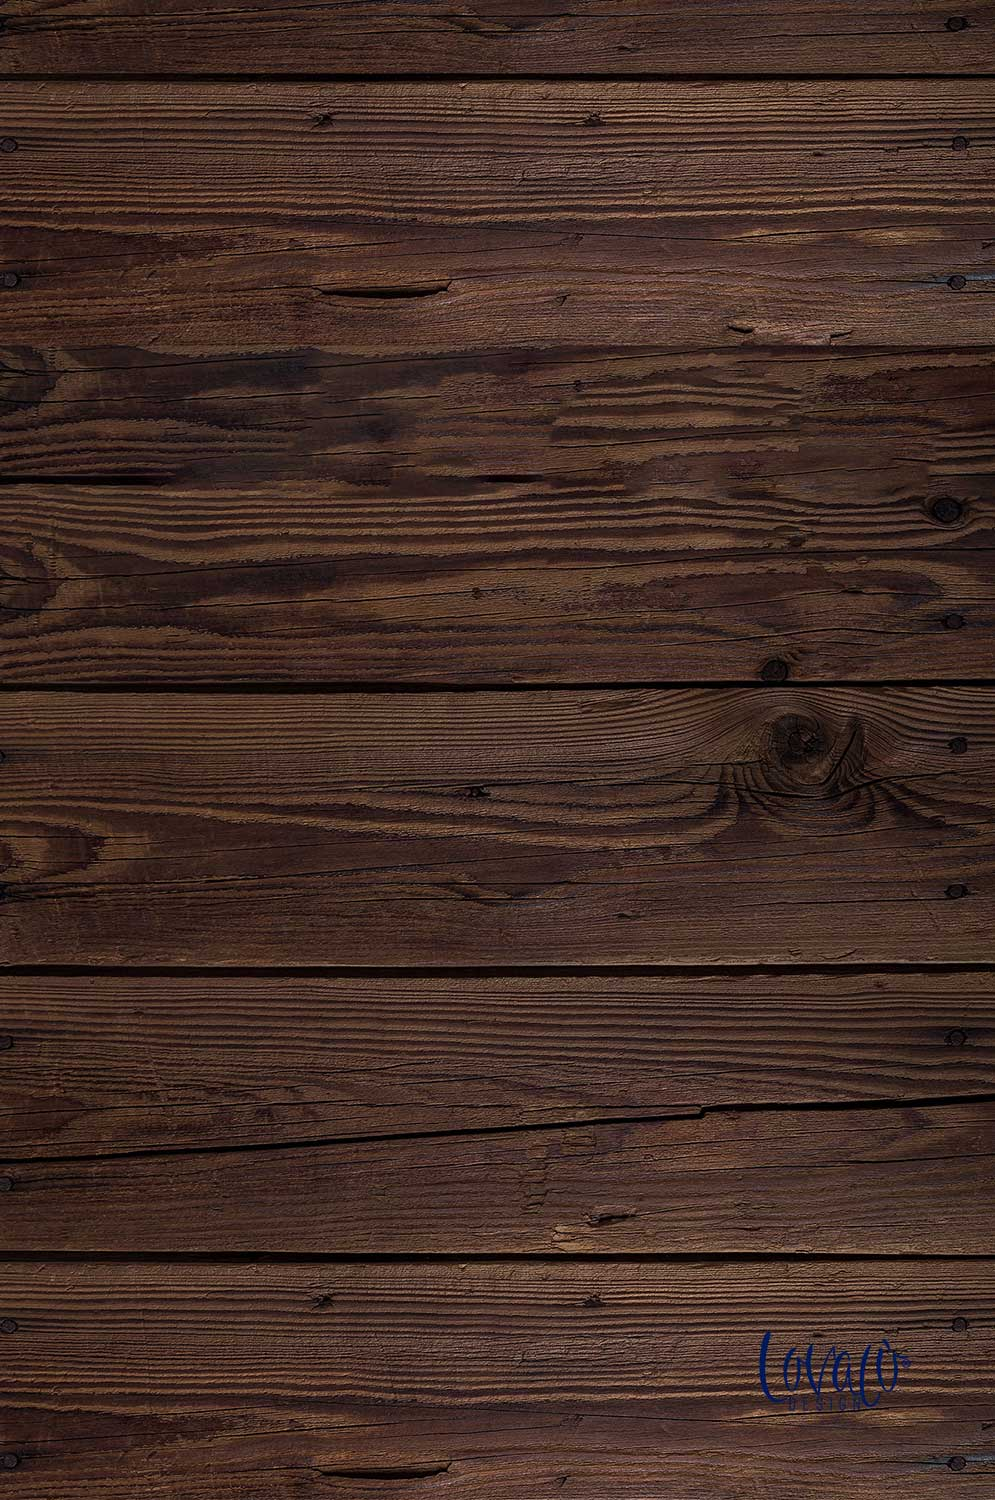 Old wood vinyl photography backdrop - Lov 276